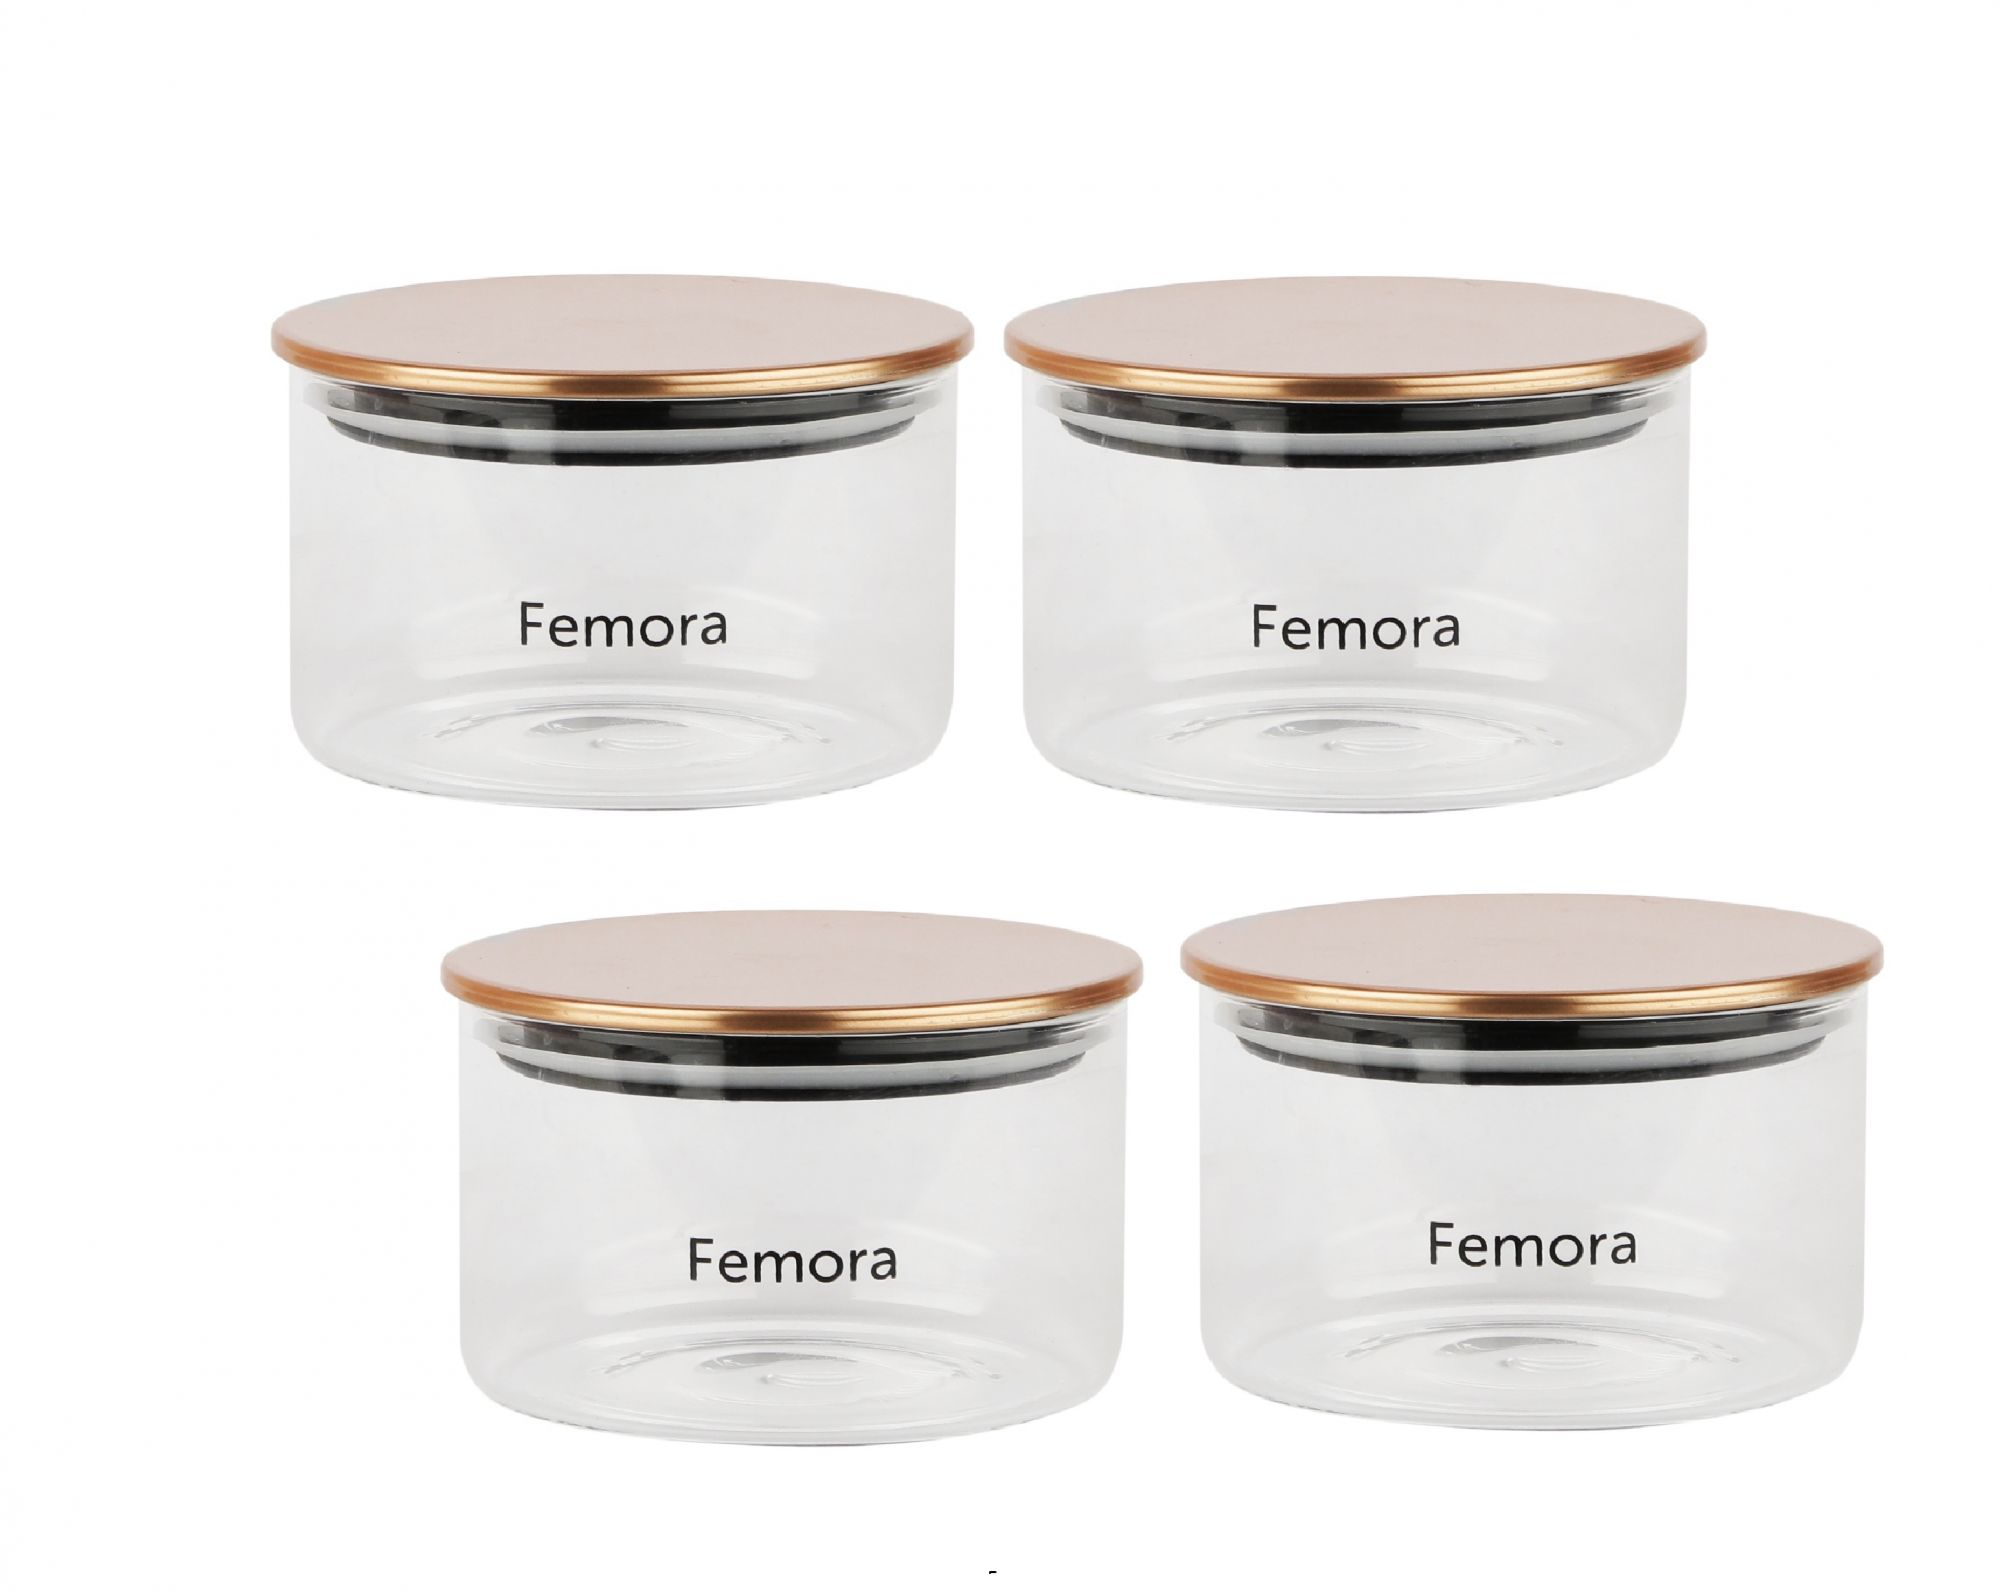 Femora Borosilicate Glass Air Tight Trend Jars with Golden Metalic Lid for Kitchen, 550ml Set of 4